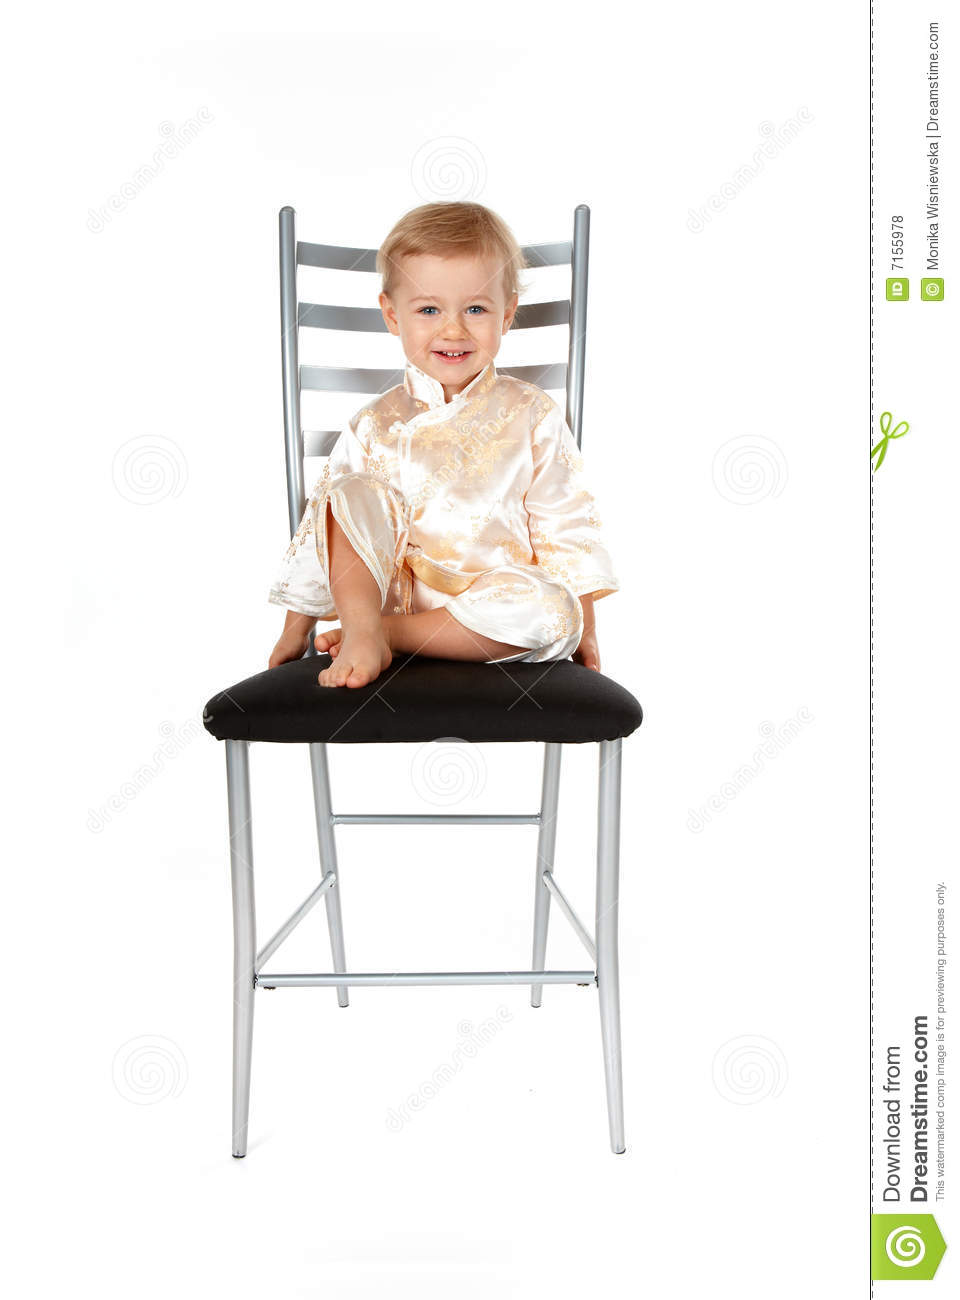 Adorable baby girl sitting on a chair royalty free stock for Toddler sitting chair